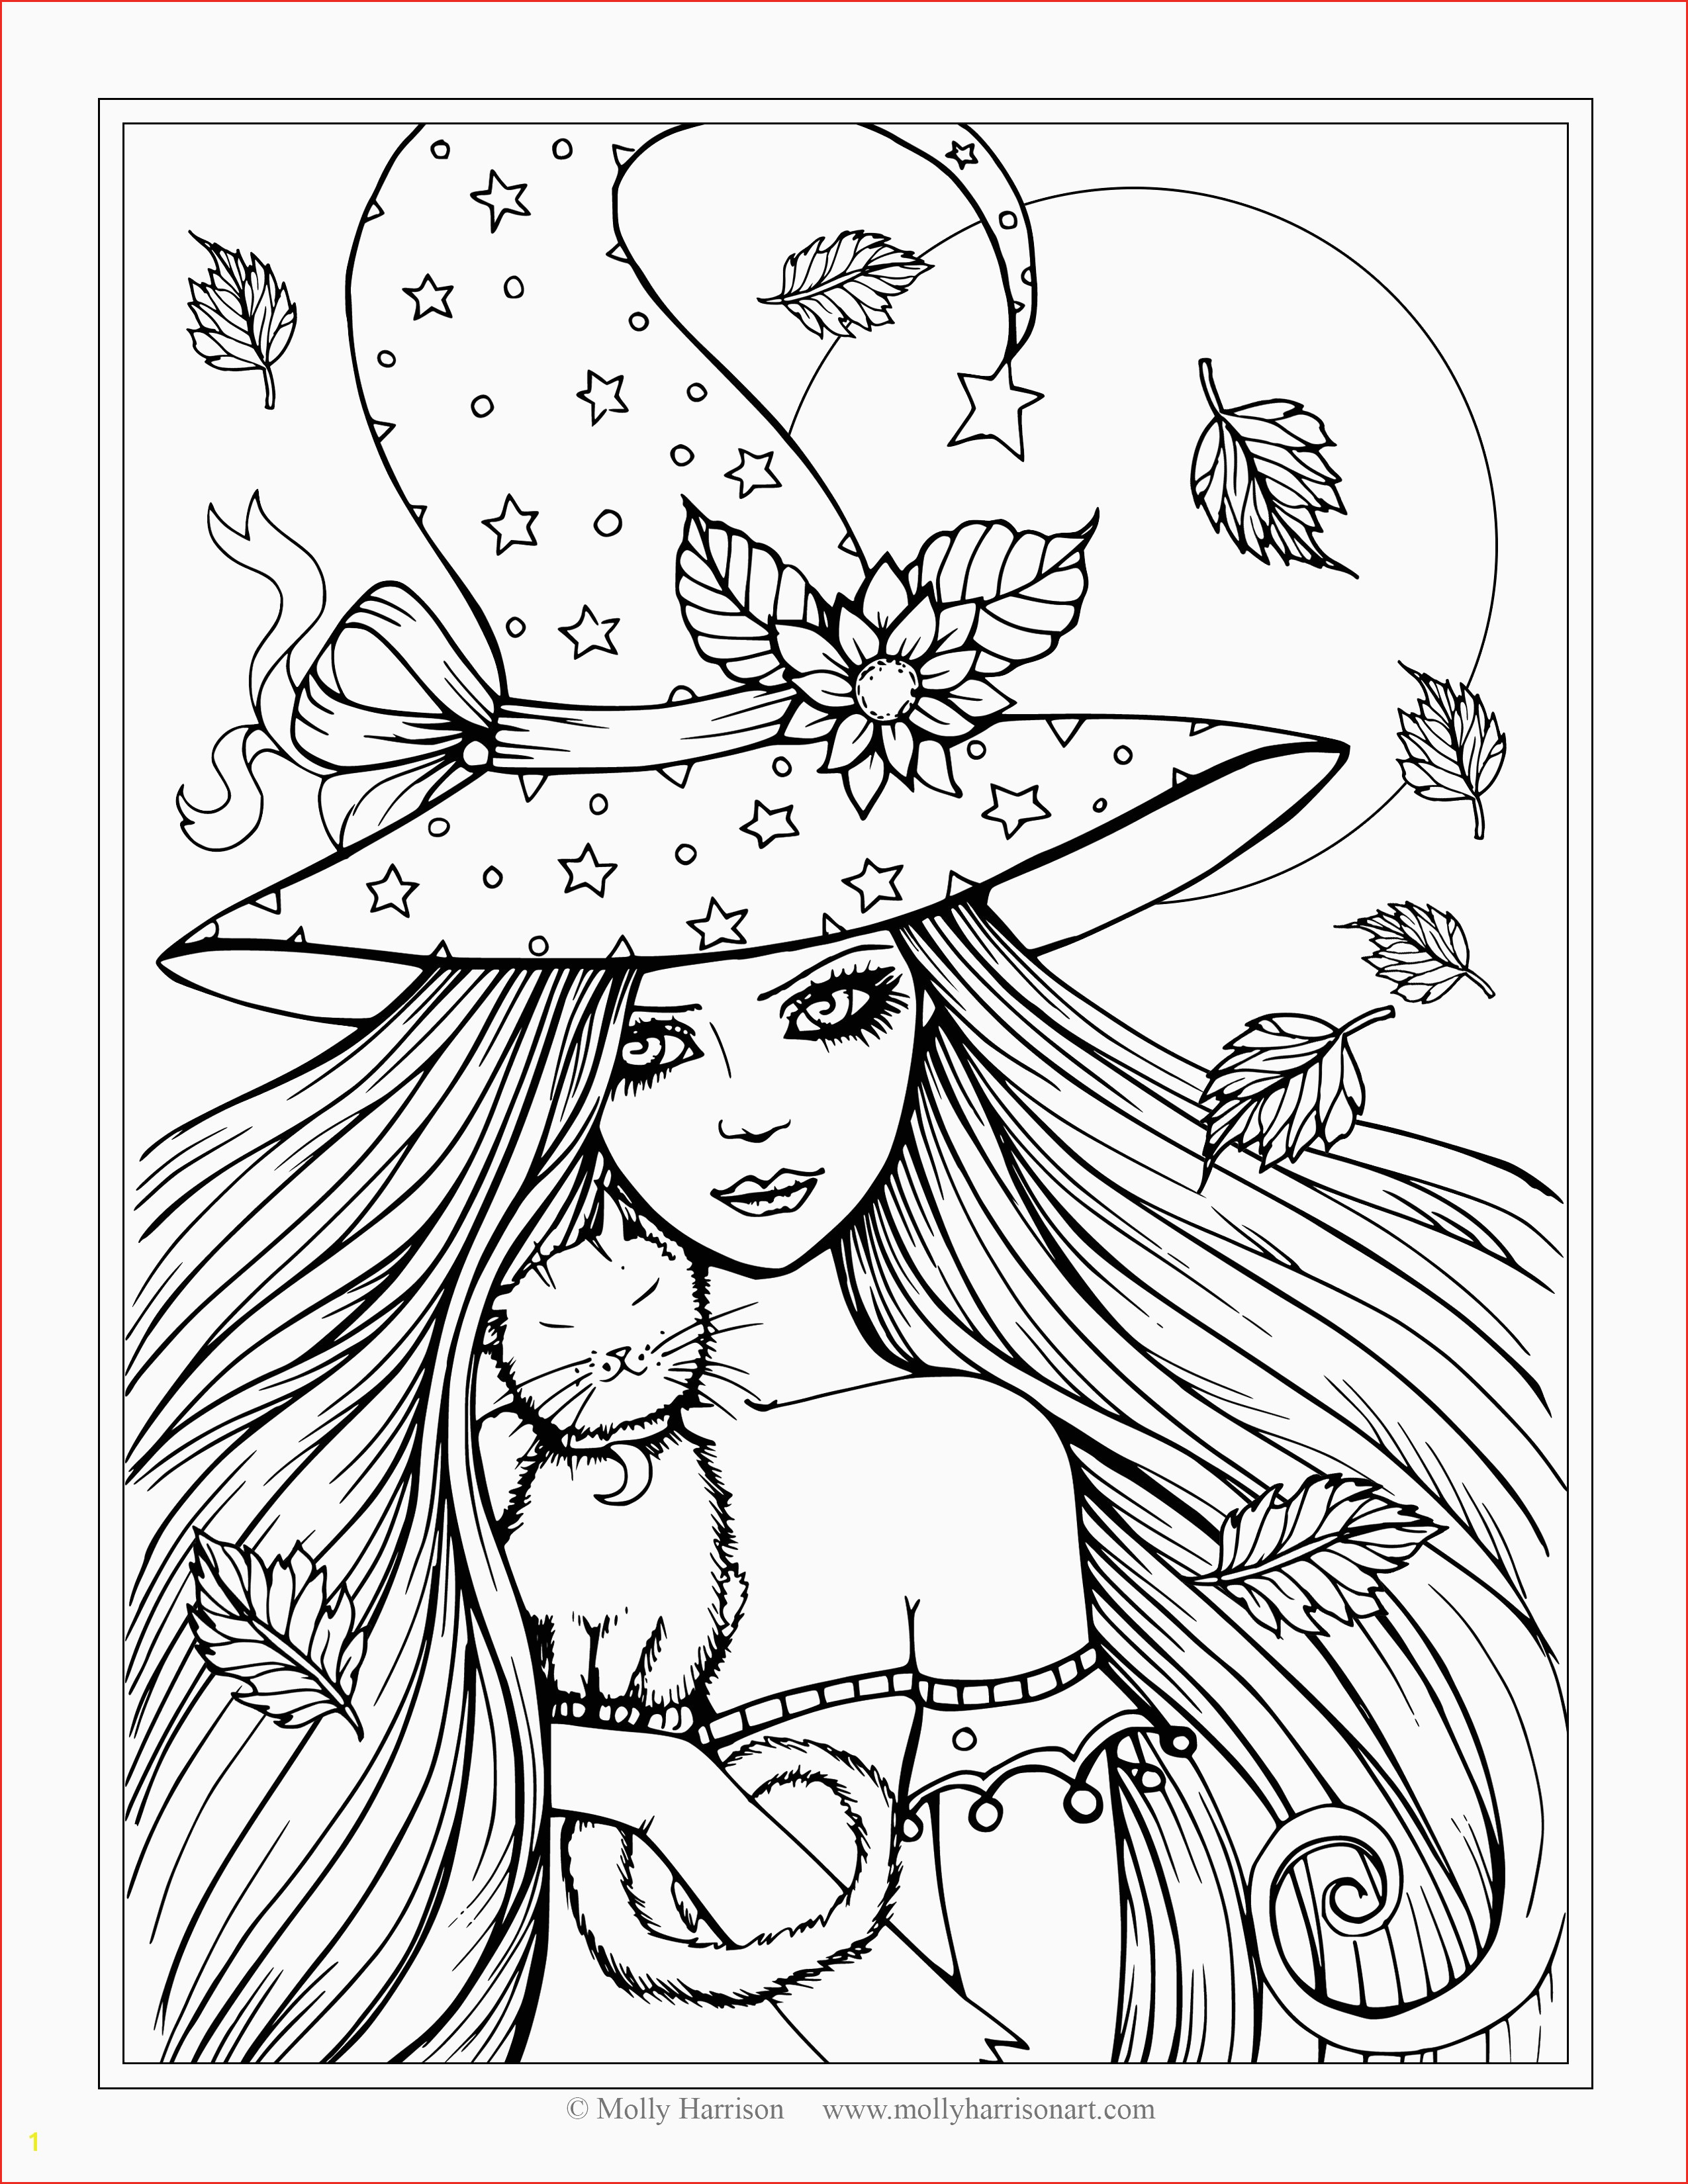 Hat Coloring Pages  Collection 2g - To print for your project